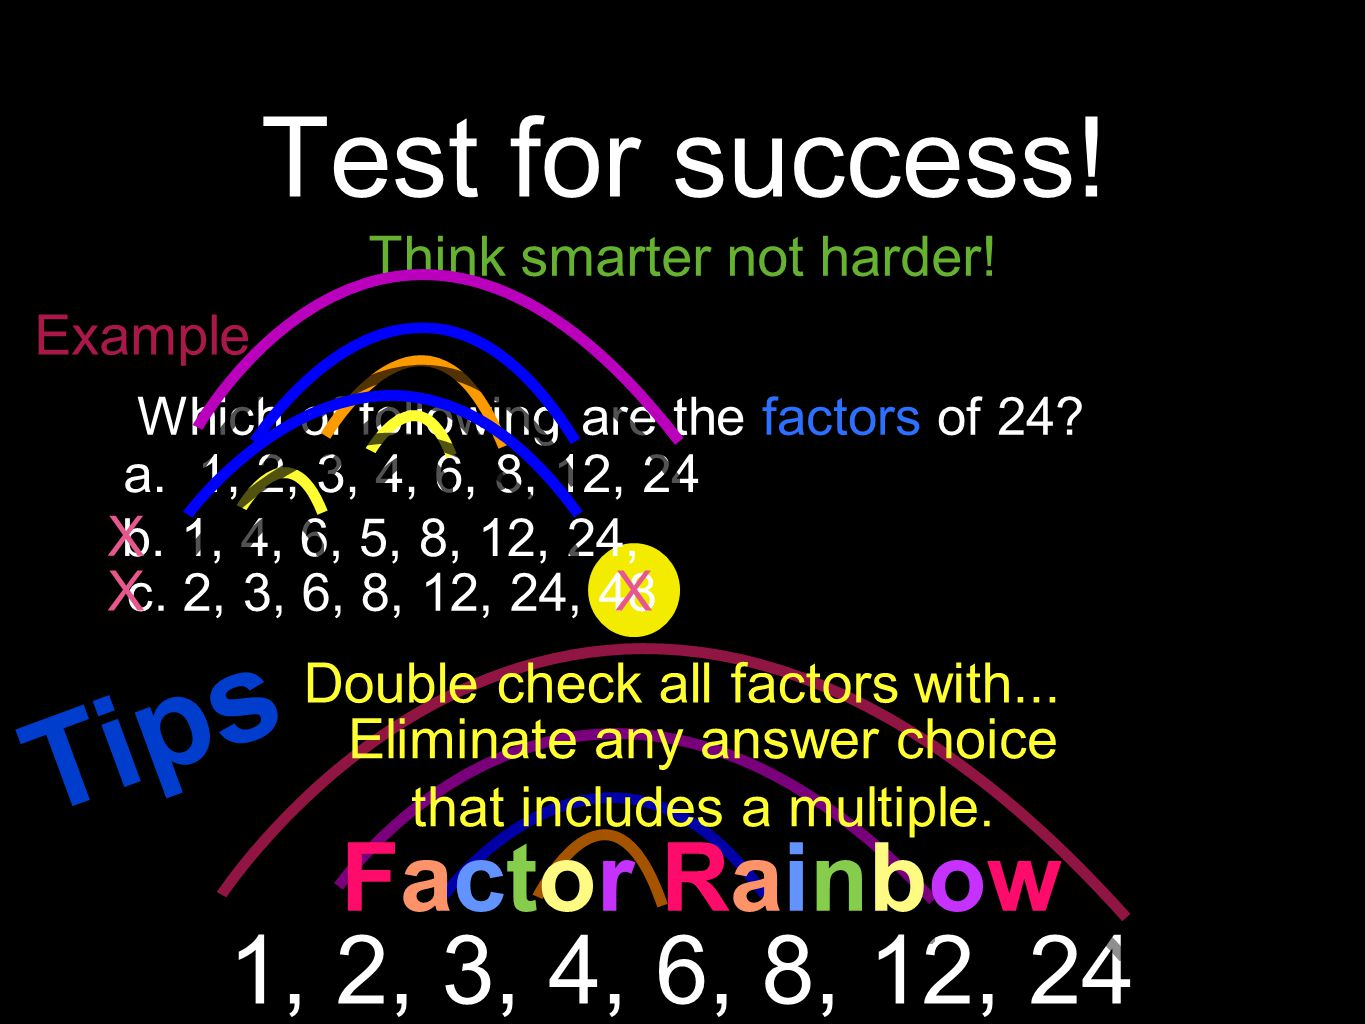 Tips Test for success! Factor Rainbow 1, 2, 3, 4, 6, 8, 12, 24